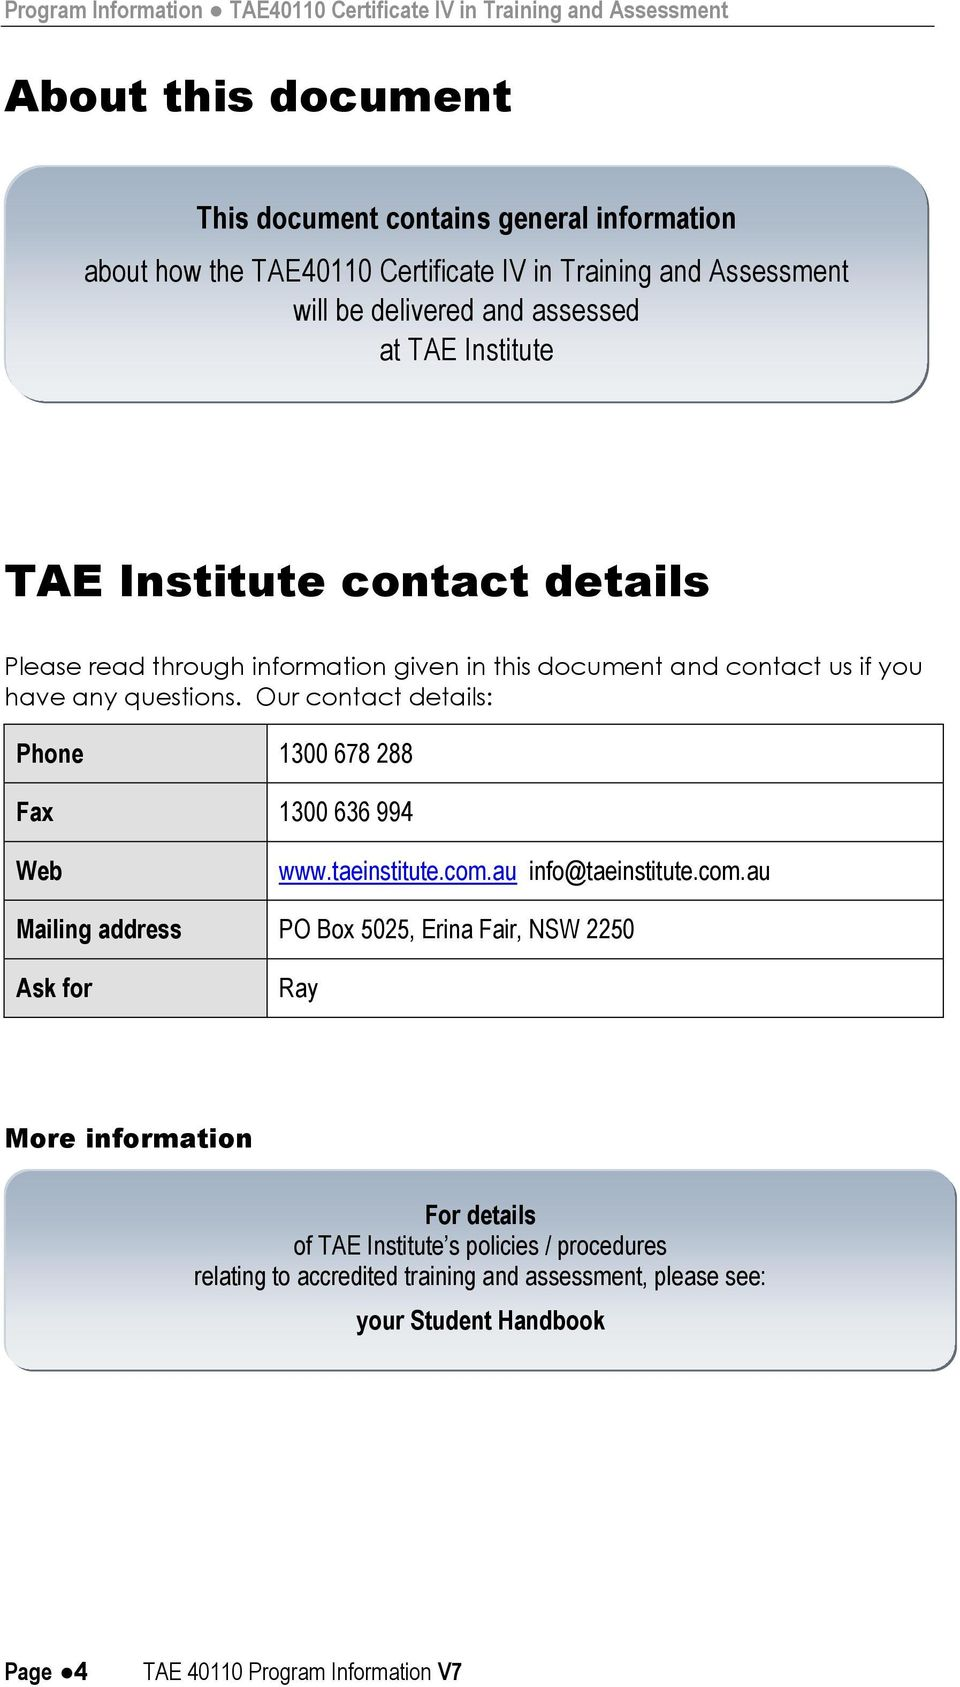 questions. Our contact details: Phone 1300 678 288 Fax 1300 636 994 Web www.taeinstitute.com.